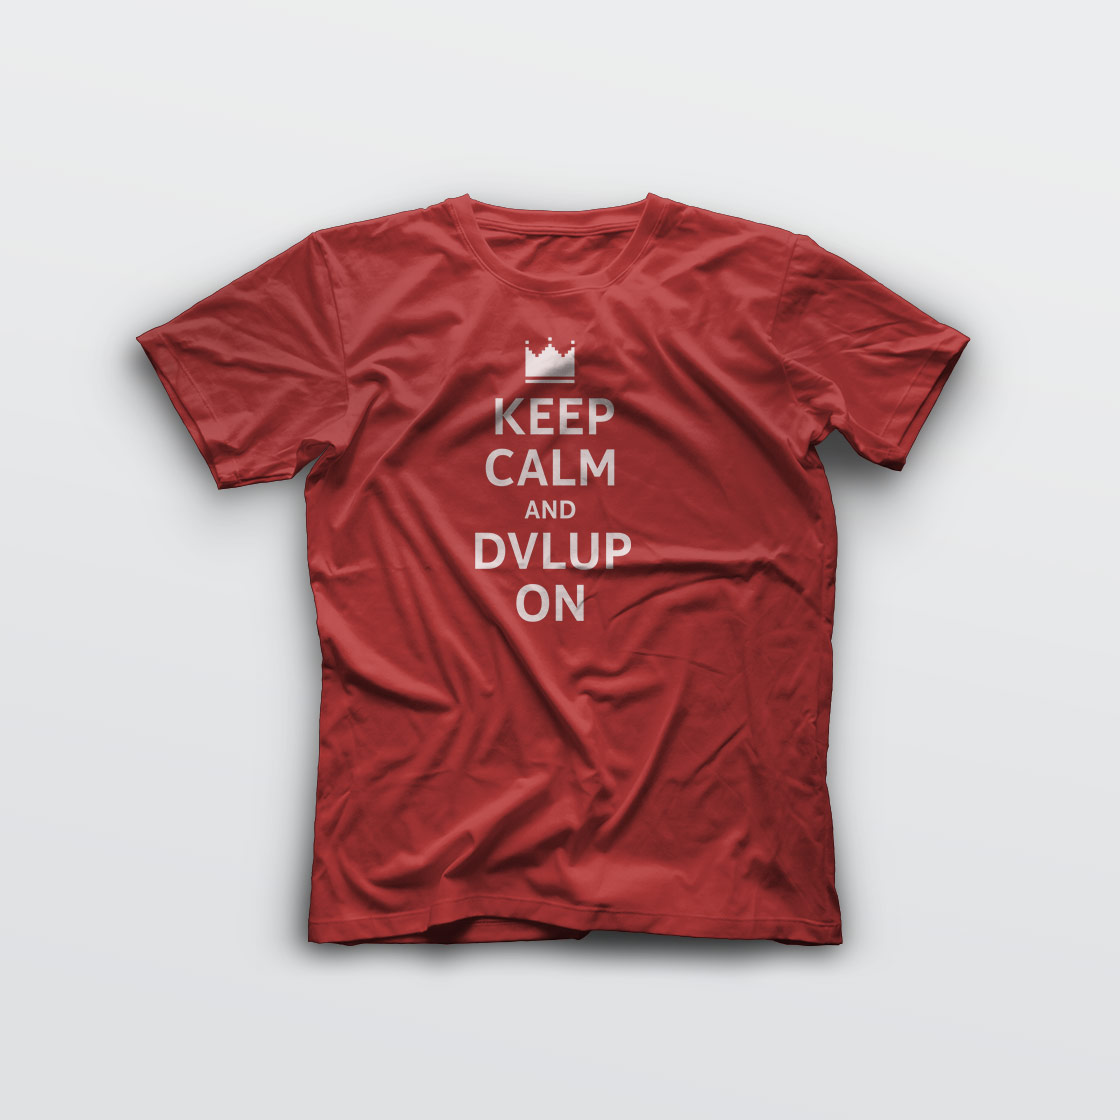 01-T-Shirt-Mock-up-KeepCalm